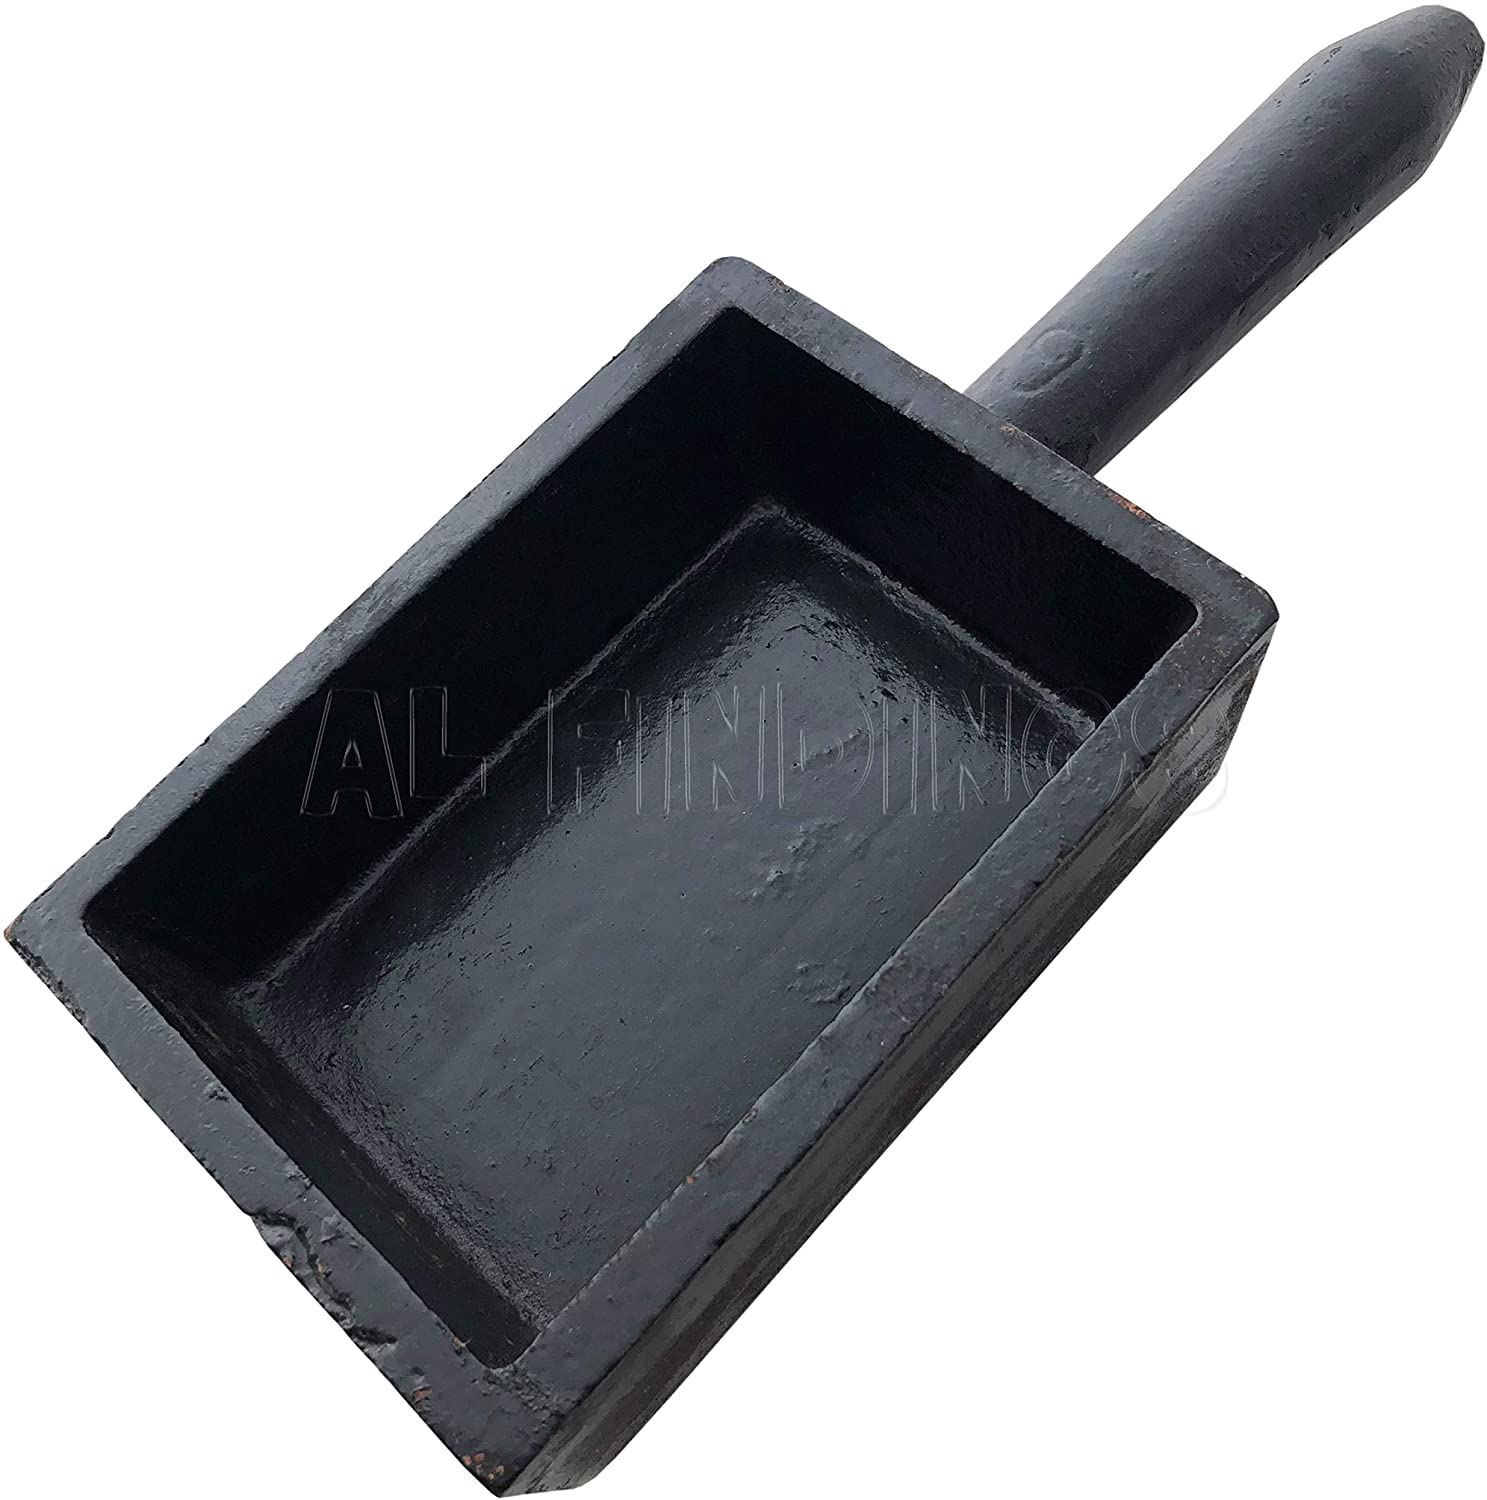 Jewellers Tools Casting Ingot Mould 240oz or 8 kg Gold Silver Metal Melting Pour Crucible Tool no6